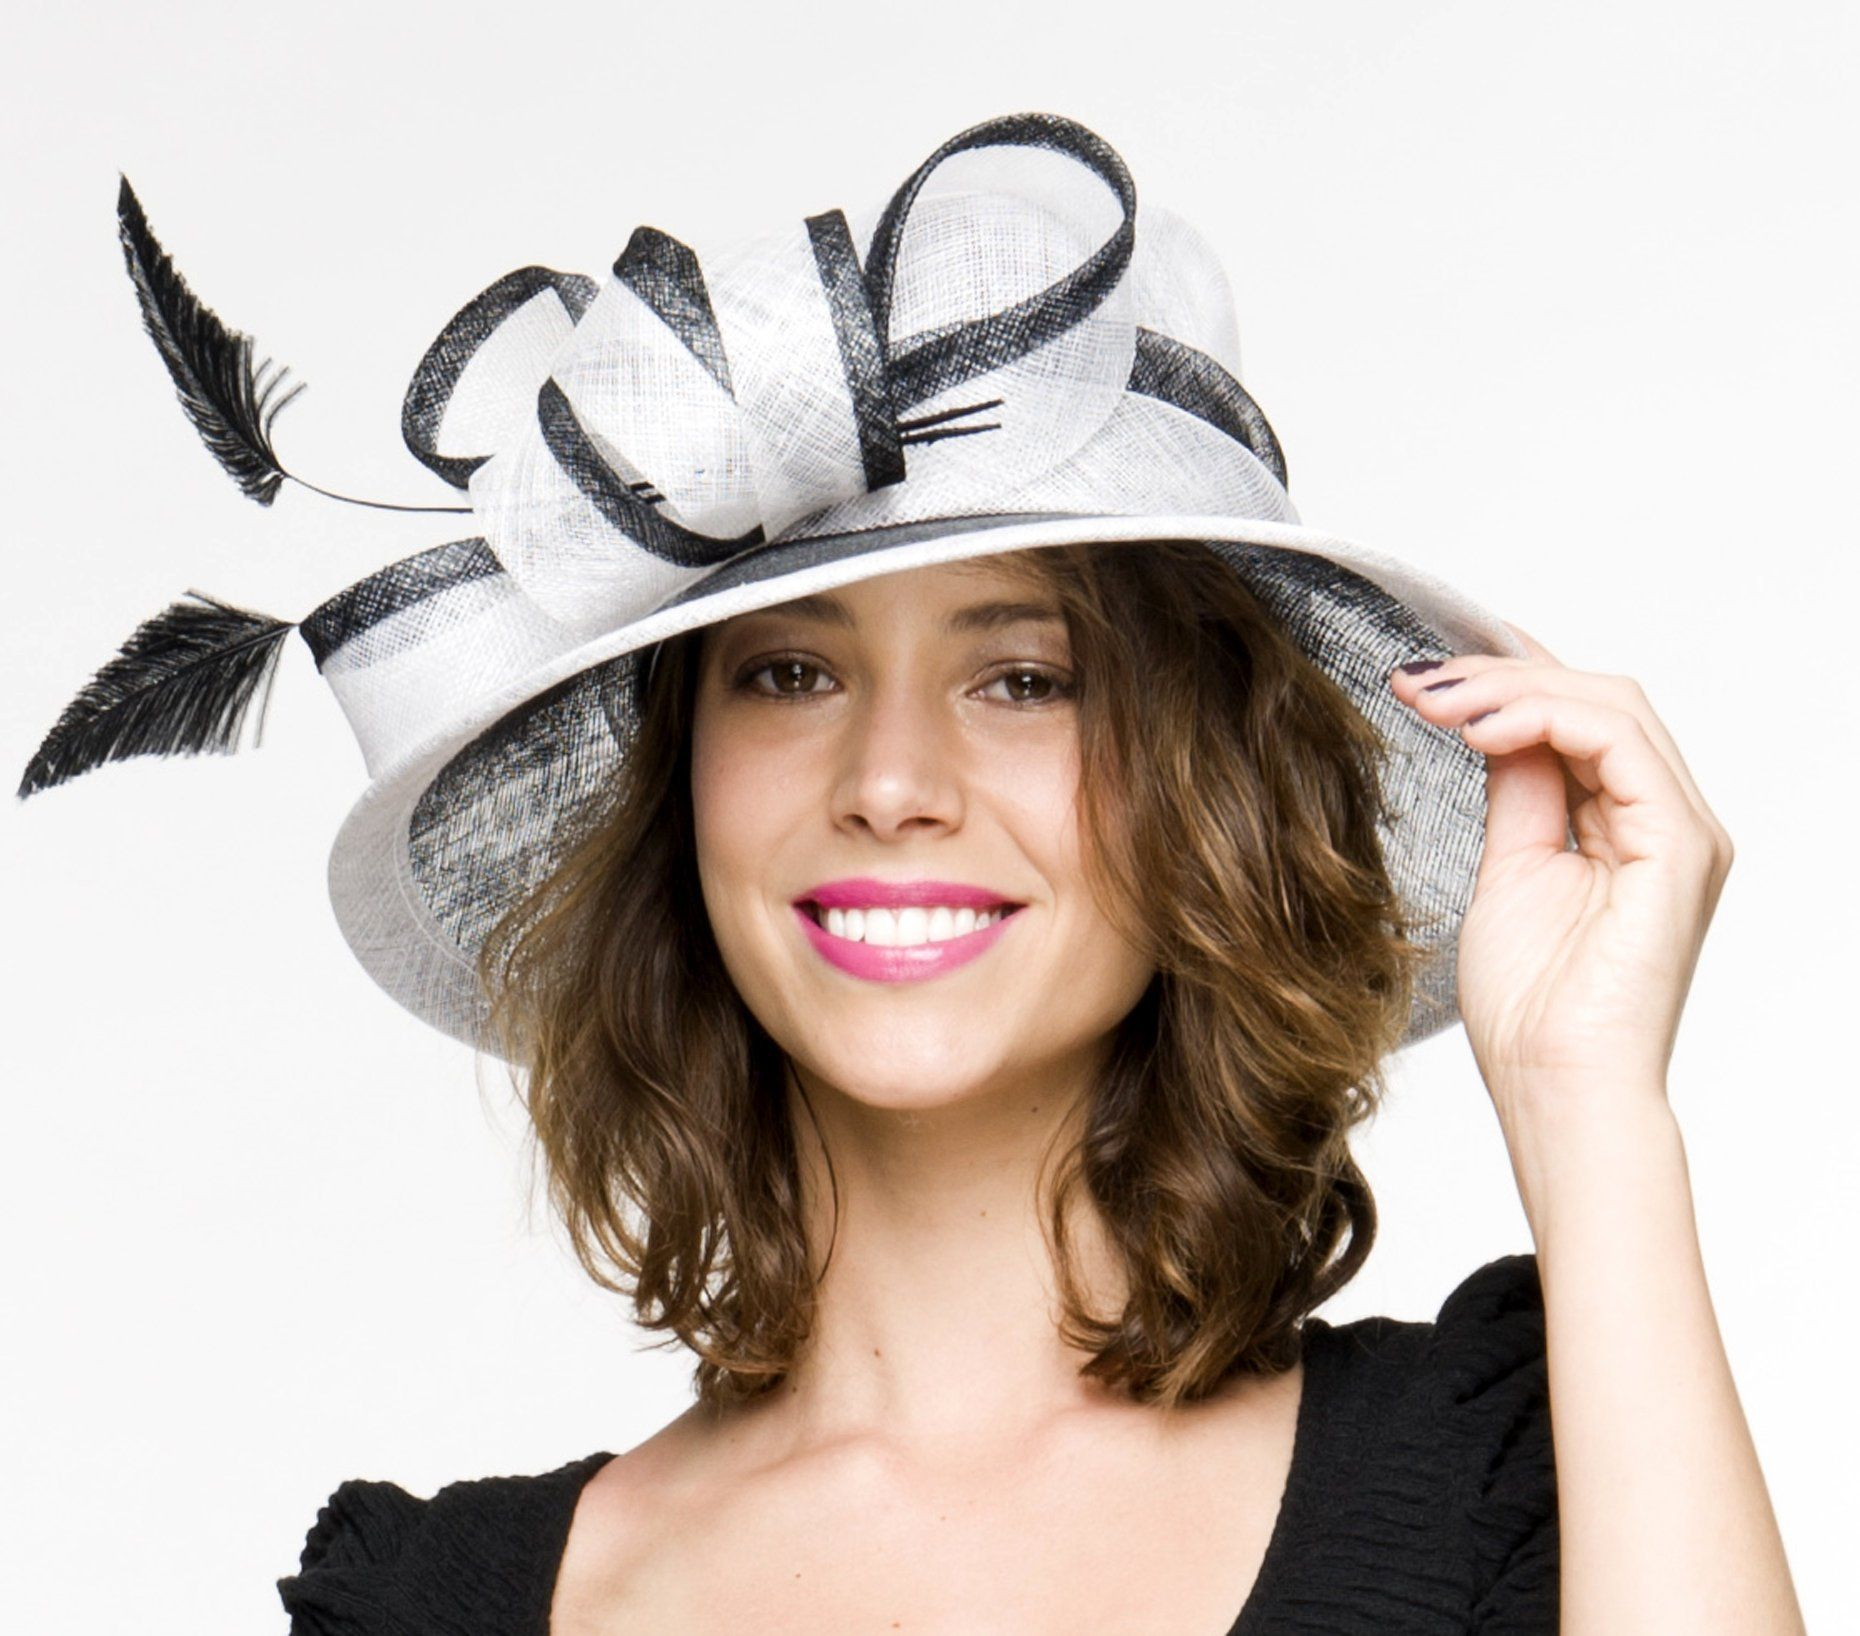 fdb96c2d1421a  71 USD at theheadwearboutique.com - SALE item  Margot Black and White Derby  Hat